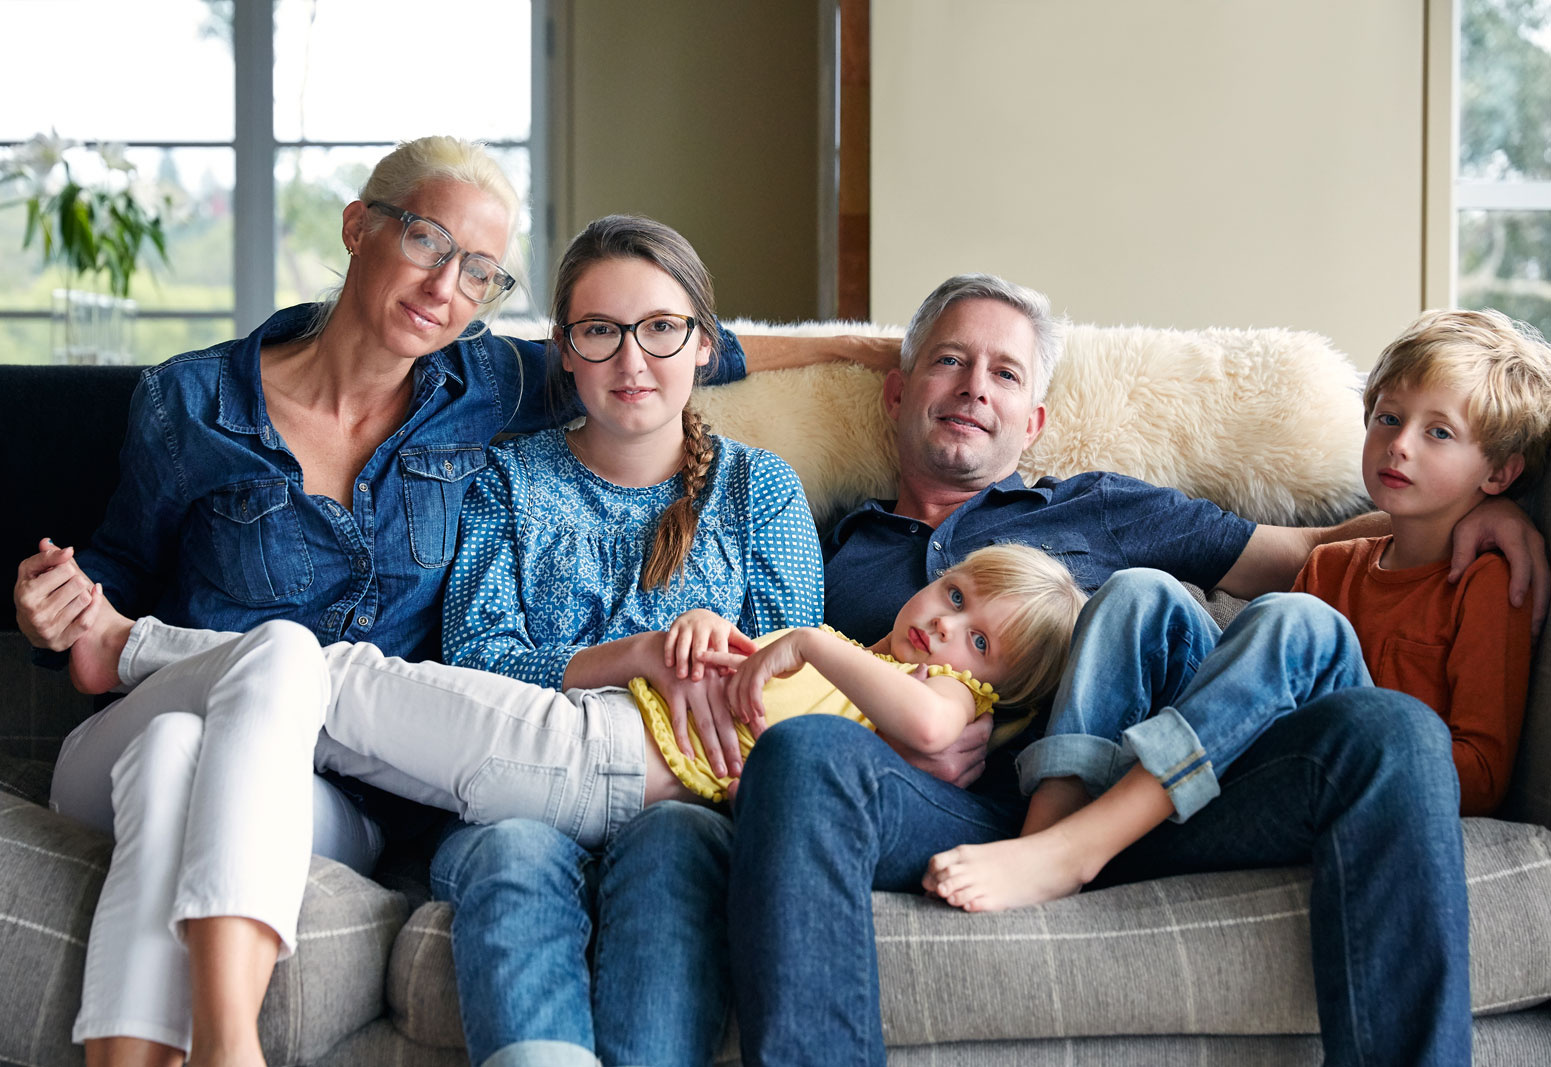 Family portrait on sofa  | Dovis Bird Agency Photography